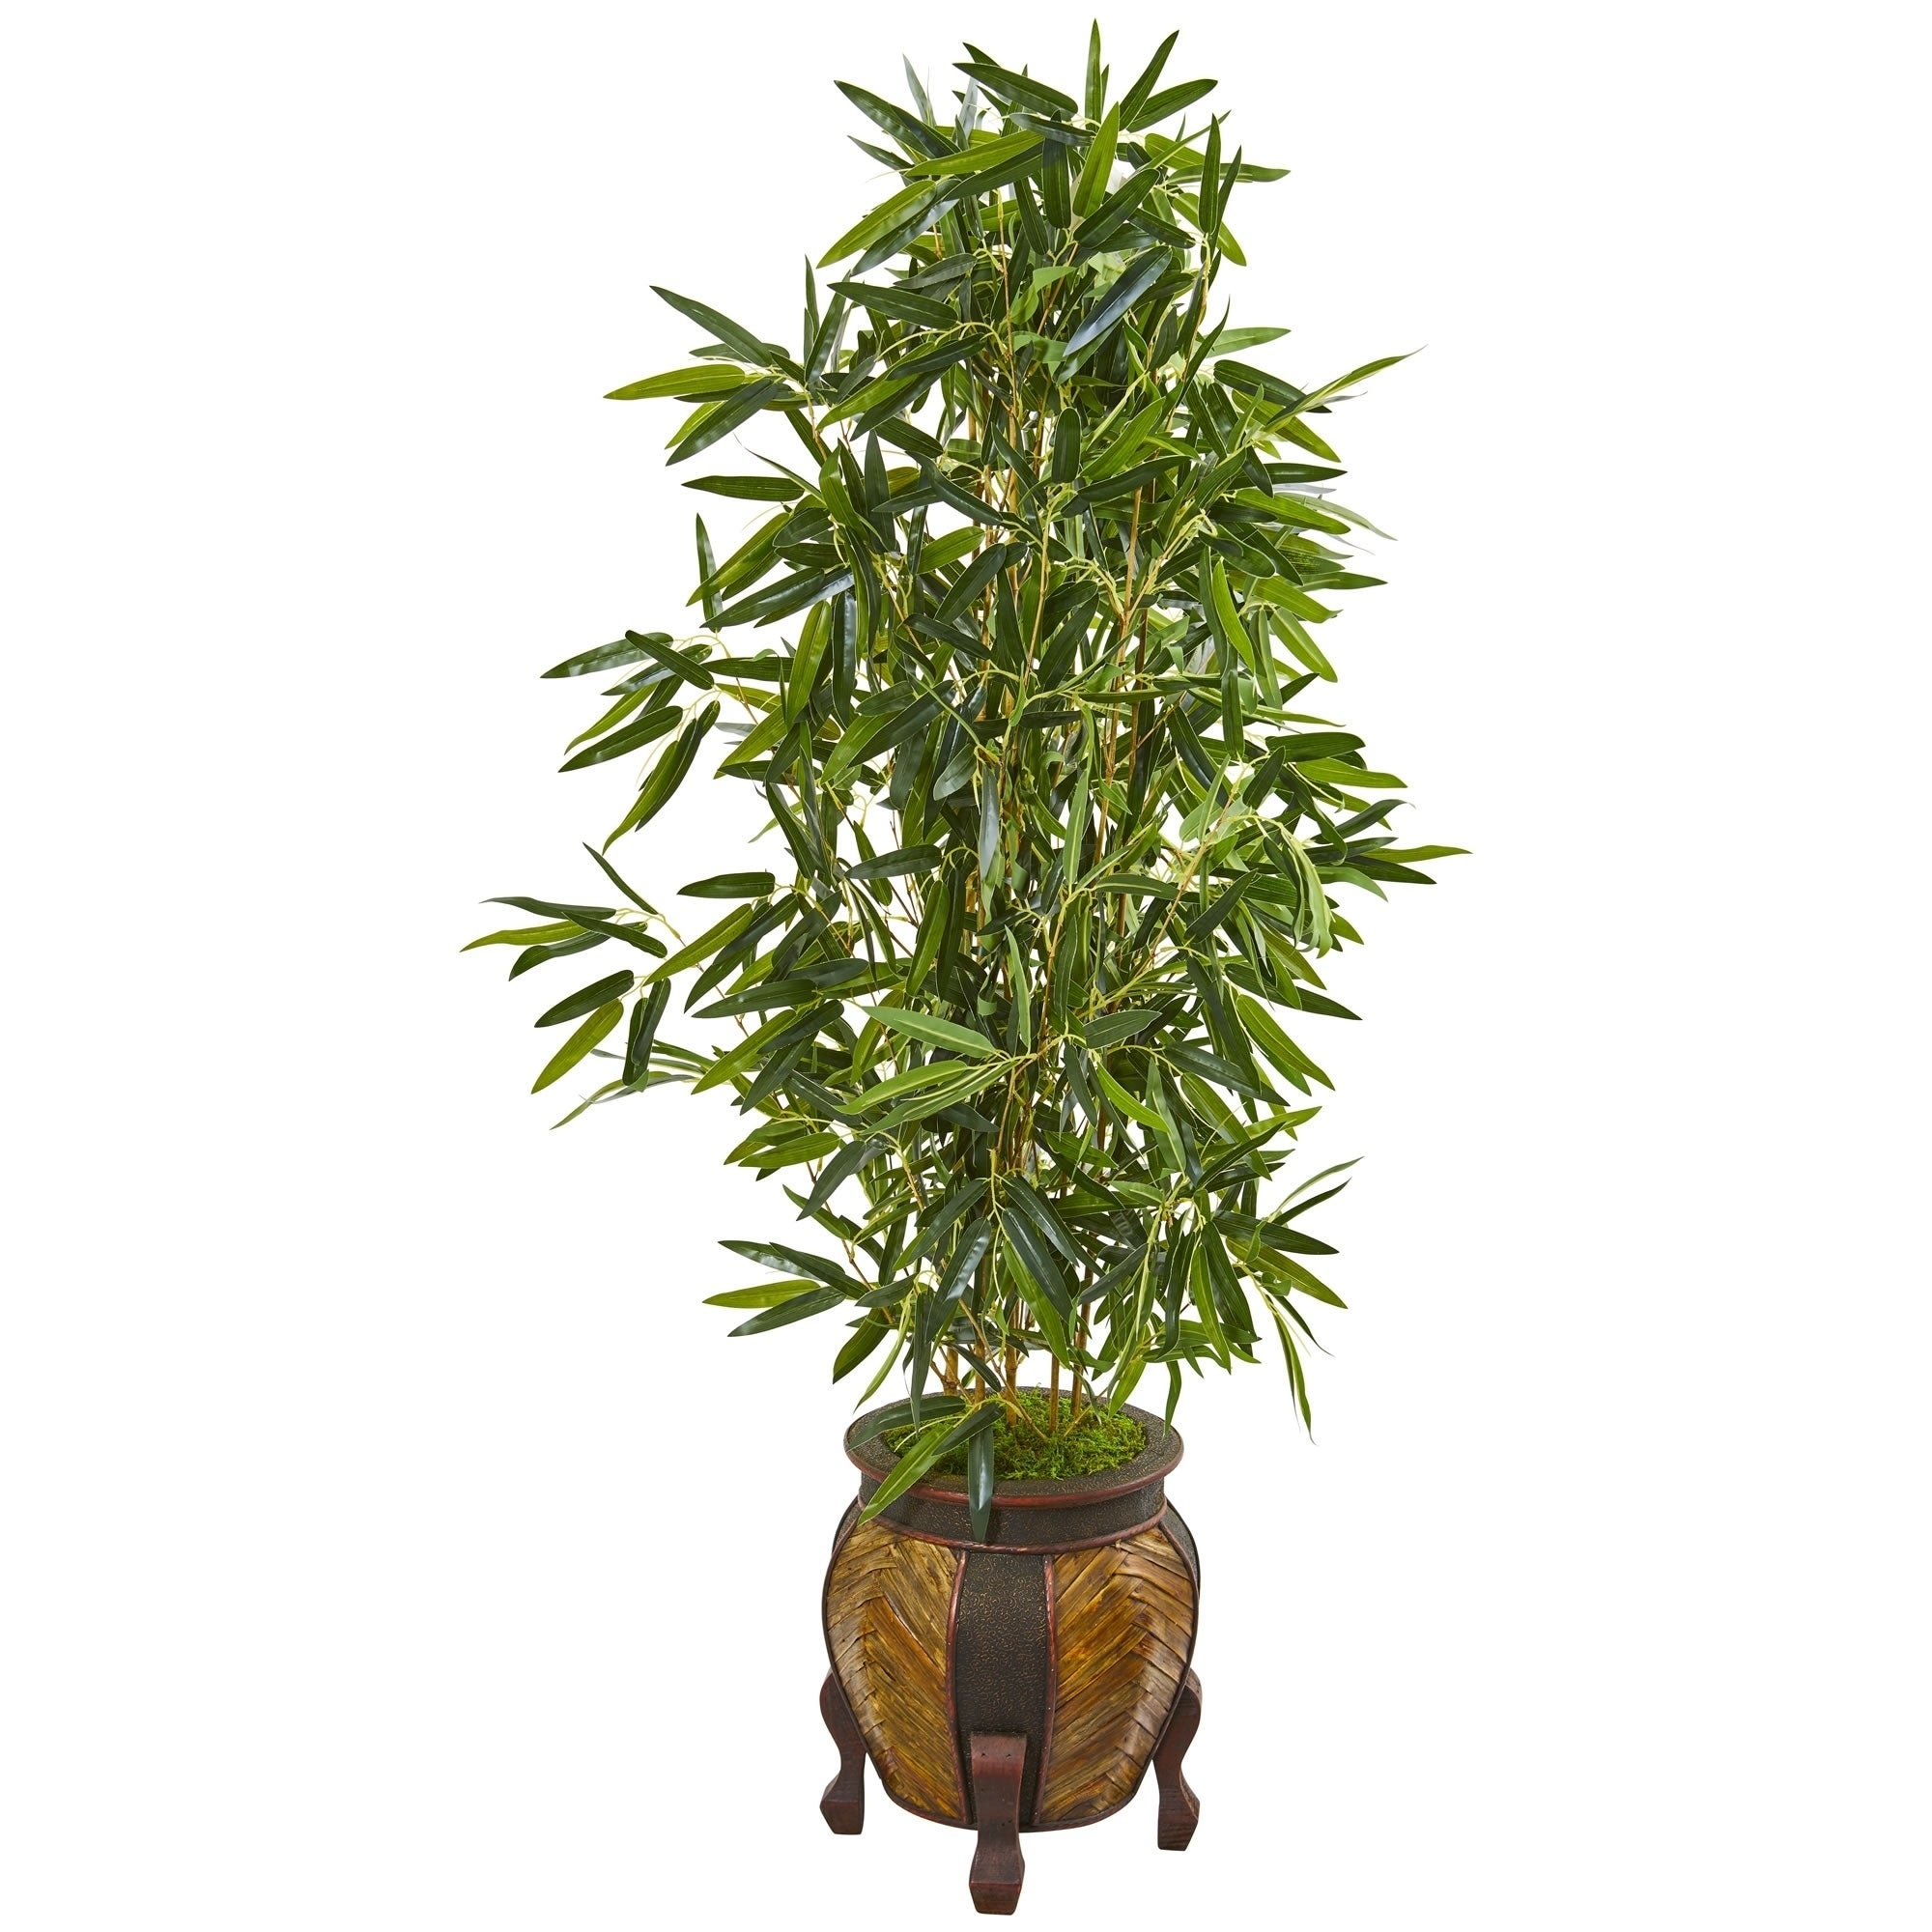 Nearly Natural Bamboo 5 Foot Real Touch Artificial Tree In Decorative Planter Overstock 23500770